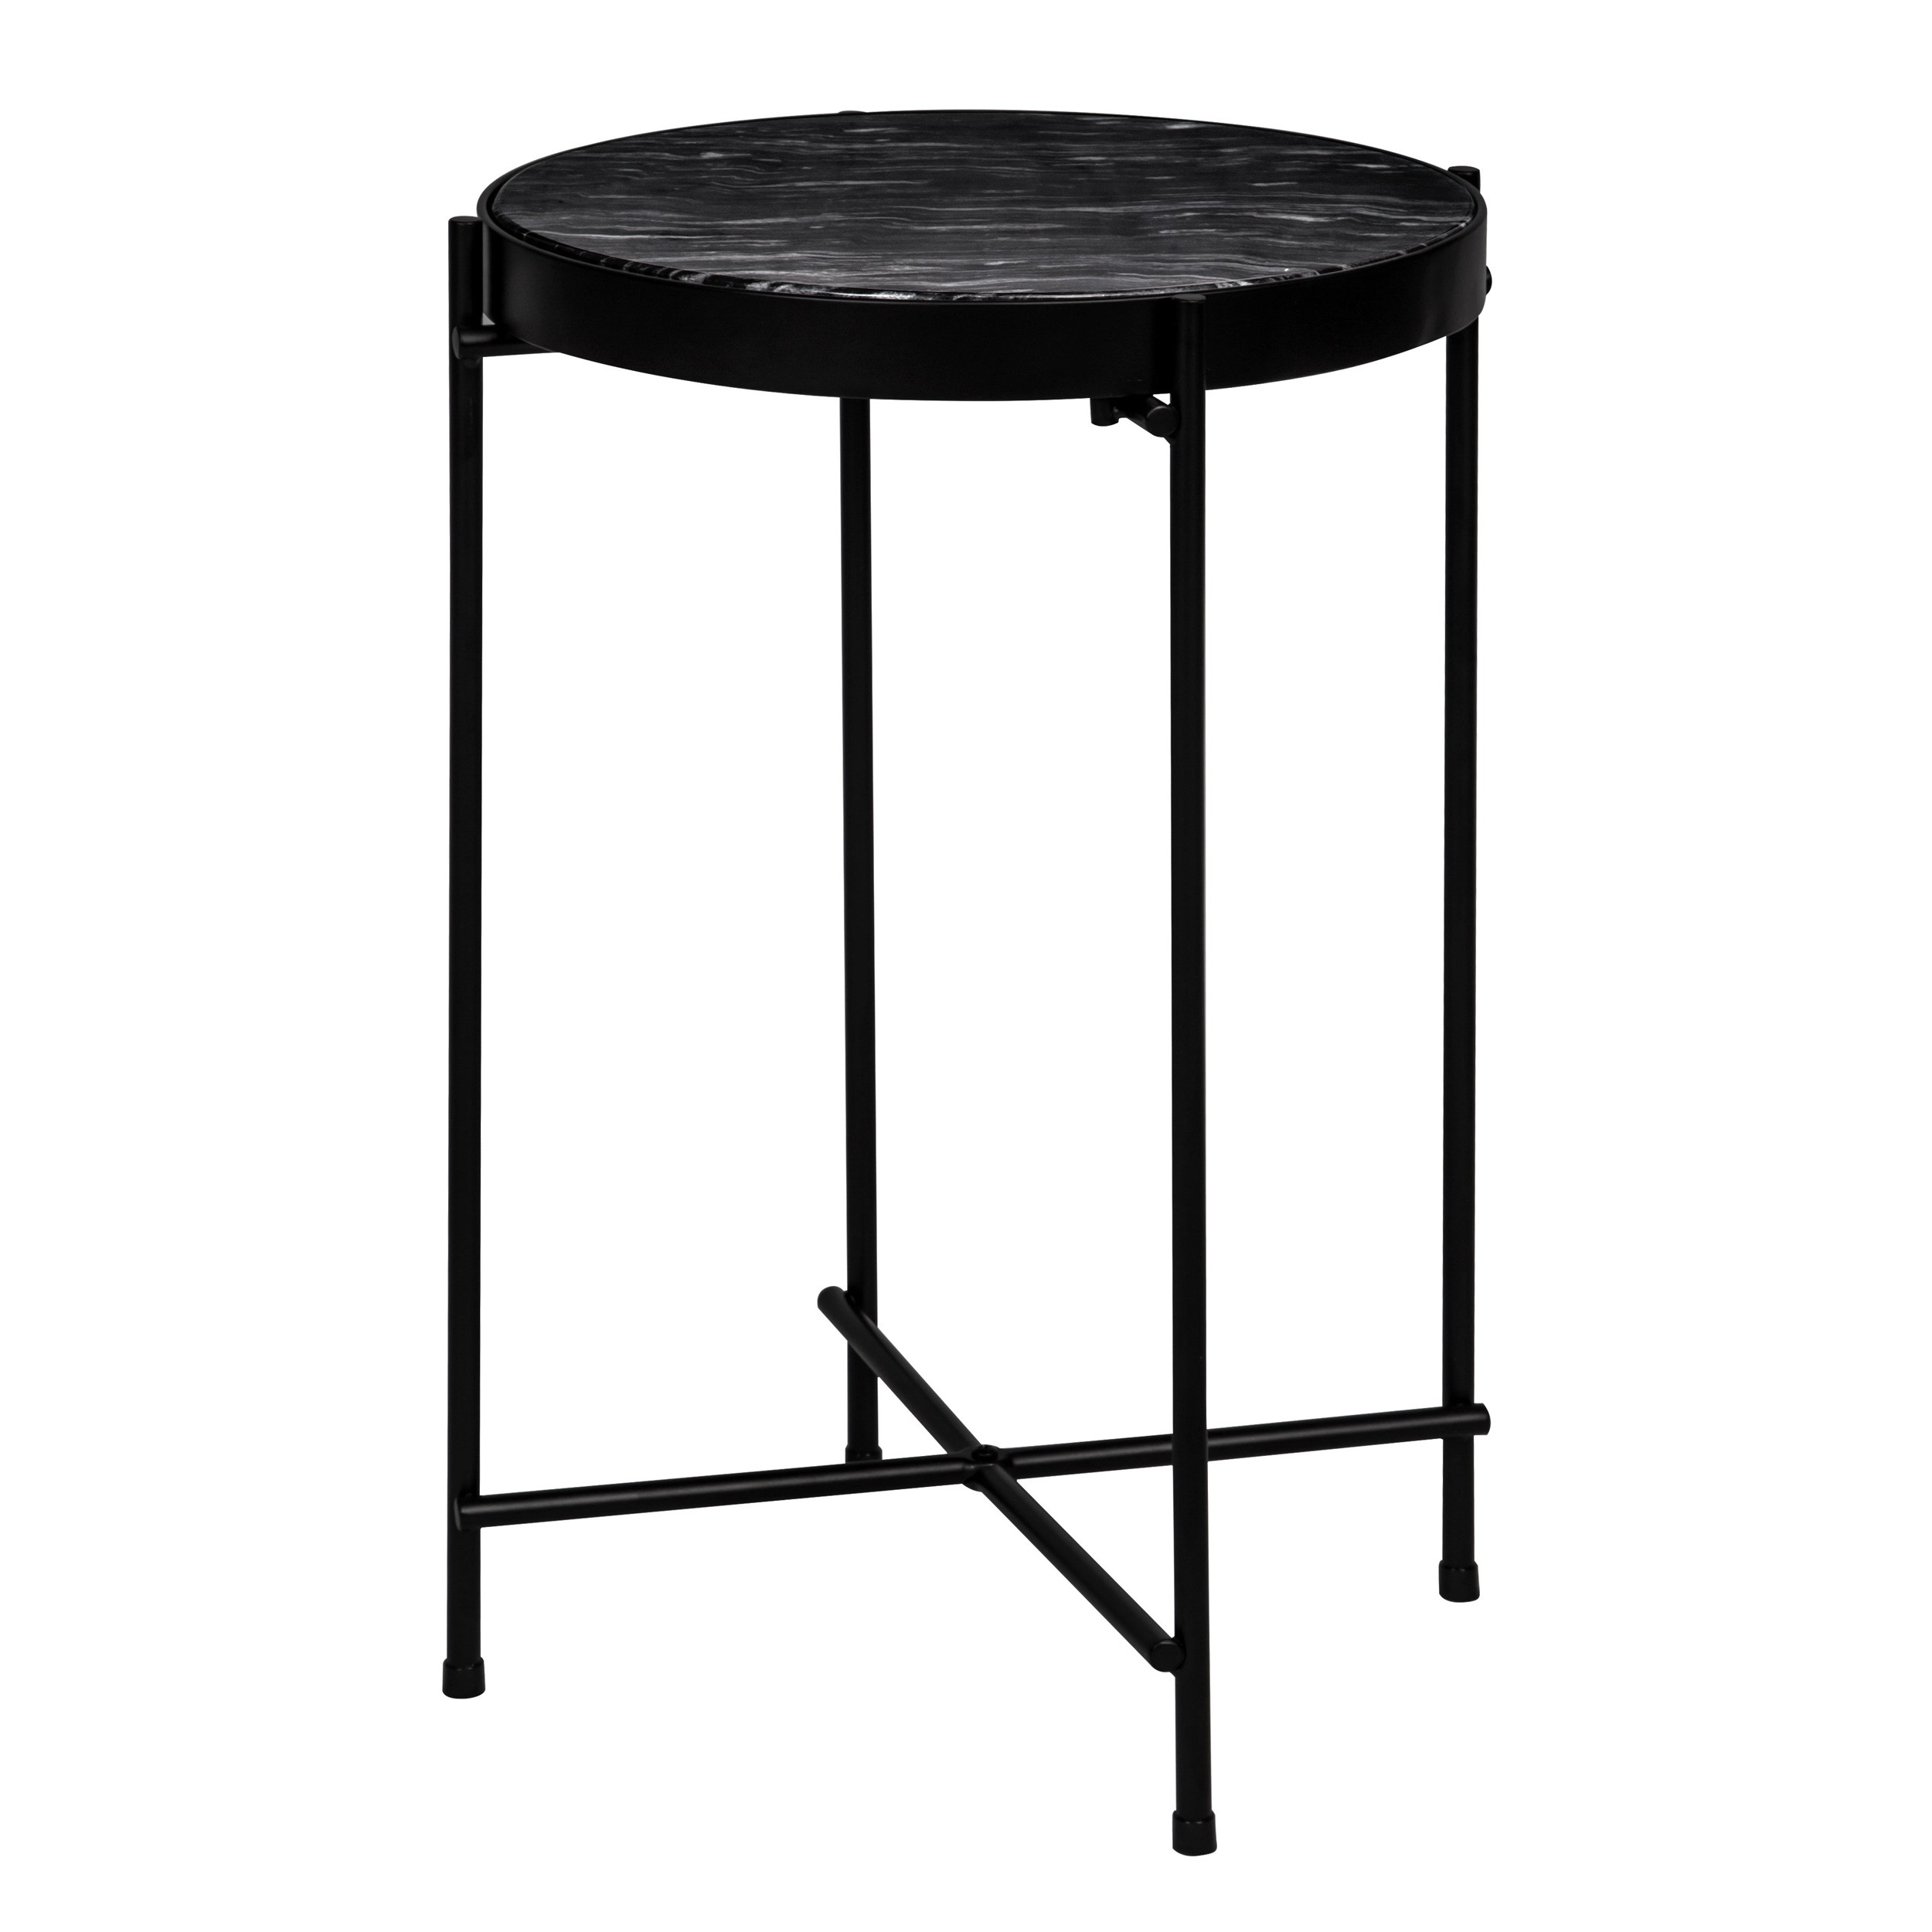 table basse ronde thilda slim marbre noire commandez les tables basses rondes thilda slim. Black Bedroom Furniture Sets. Home Design Ideas